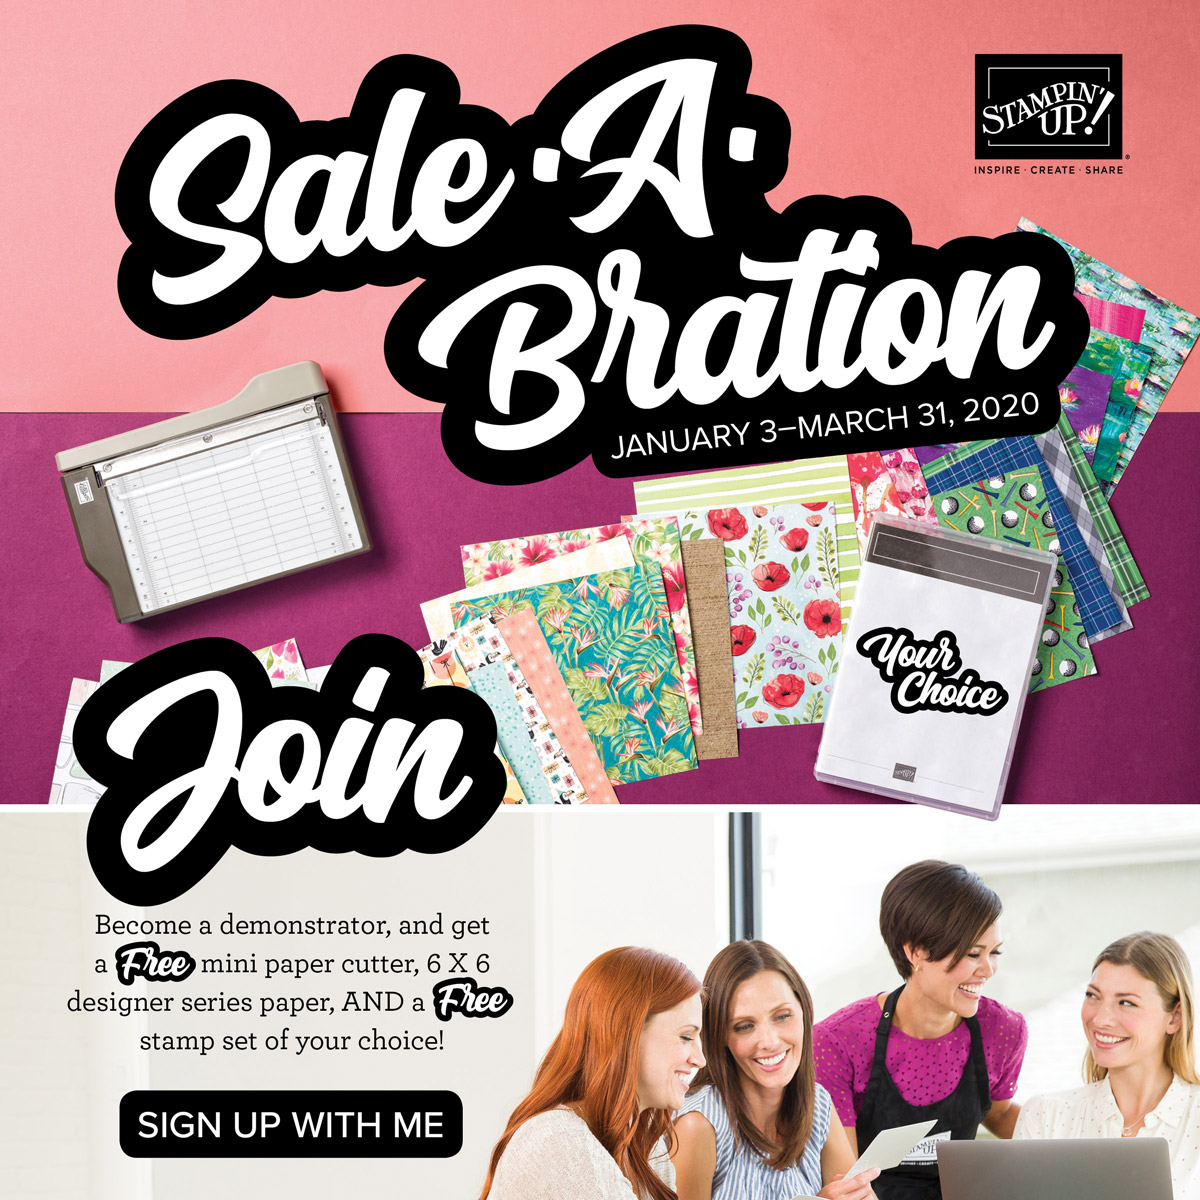 FINAL Reasons to Join My Team DuringSale-a-Bration